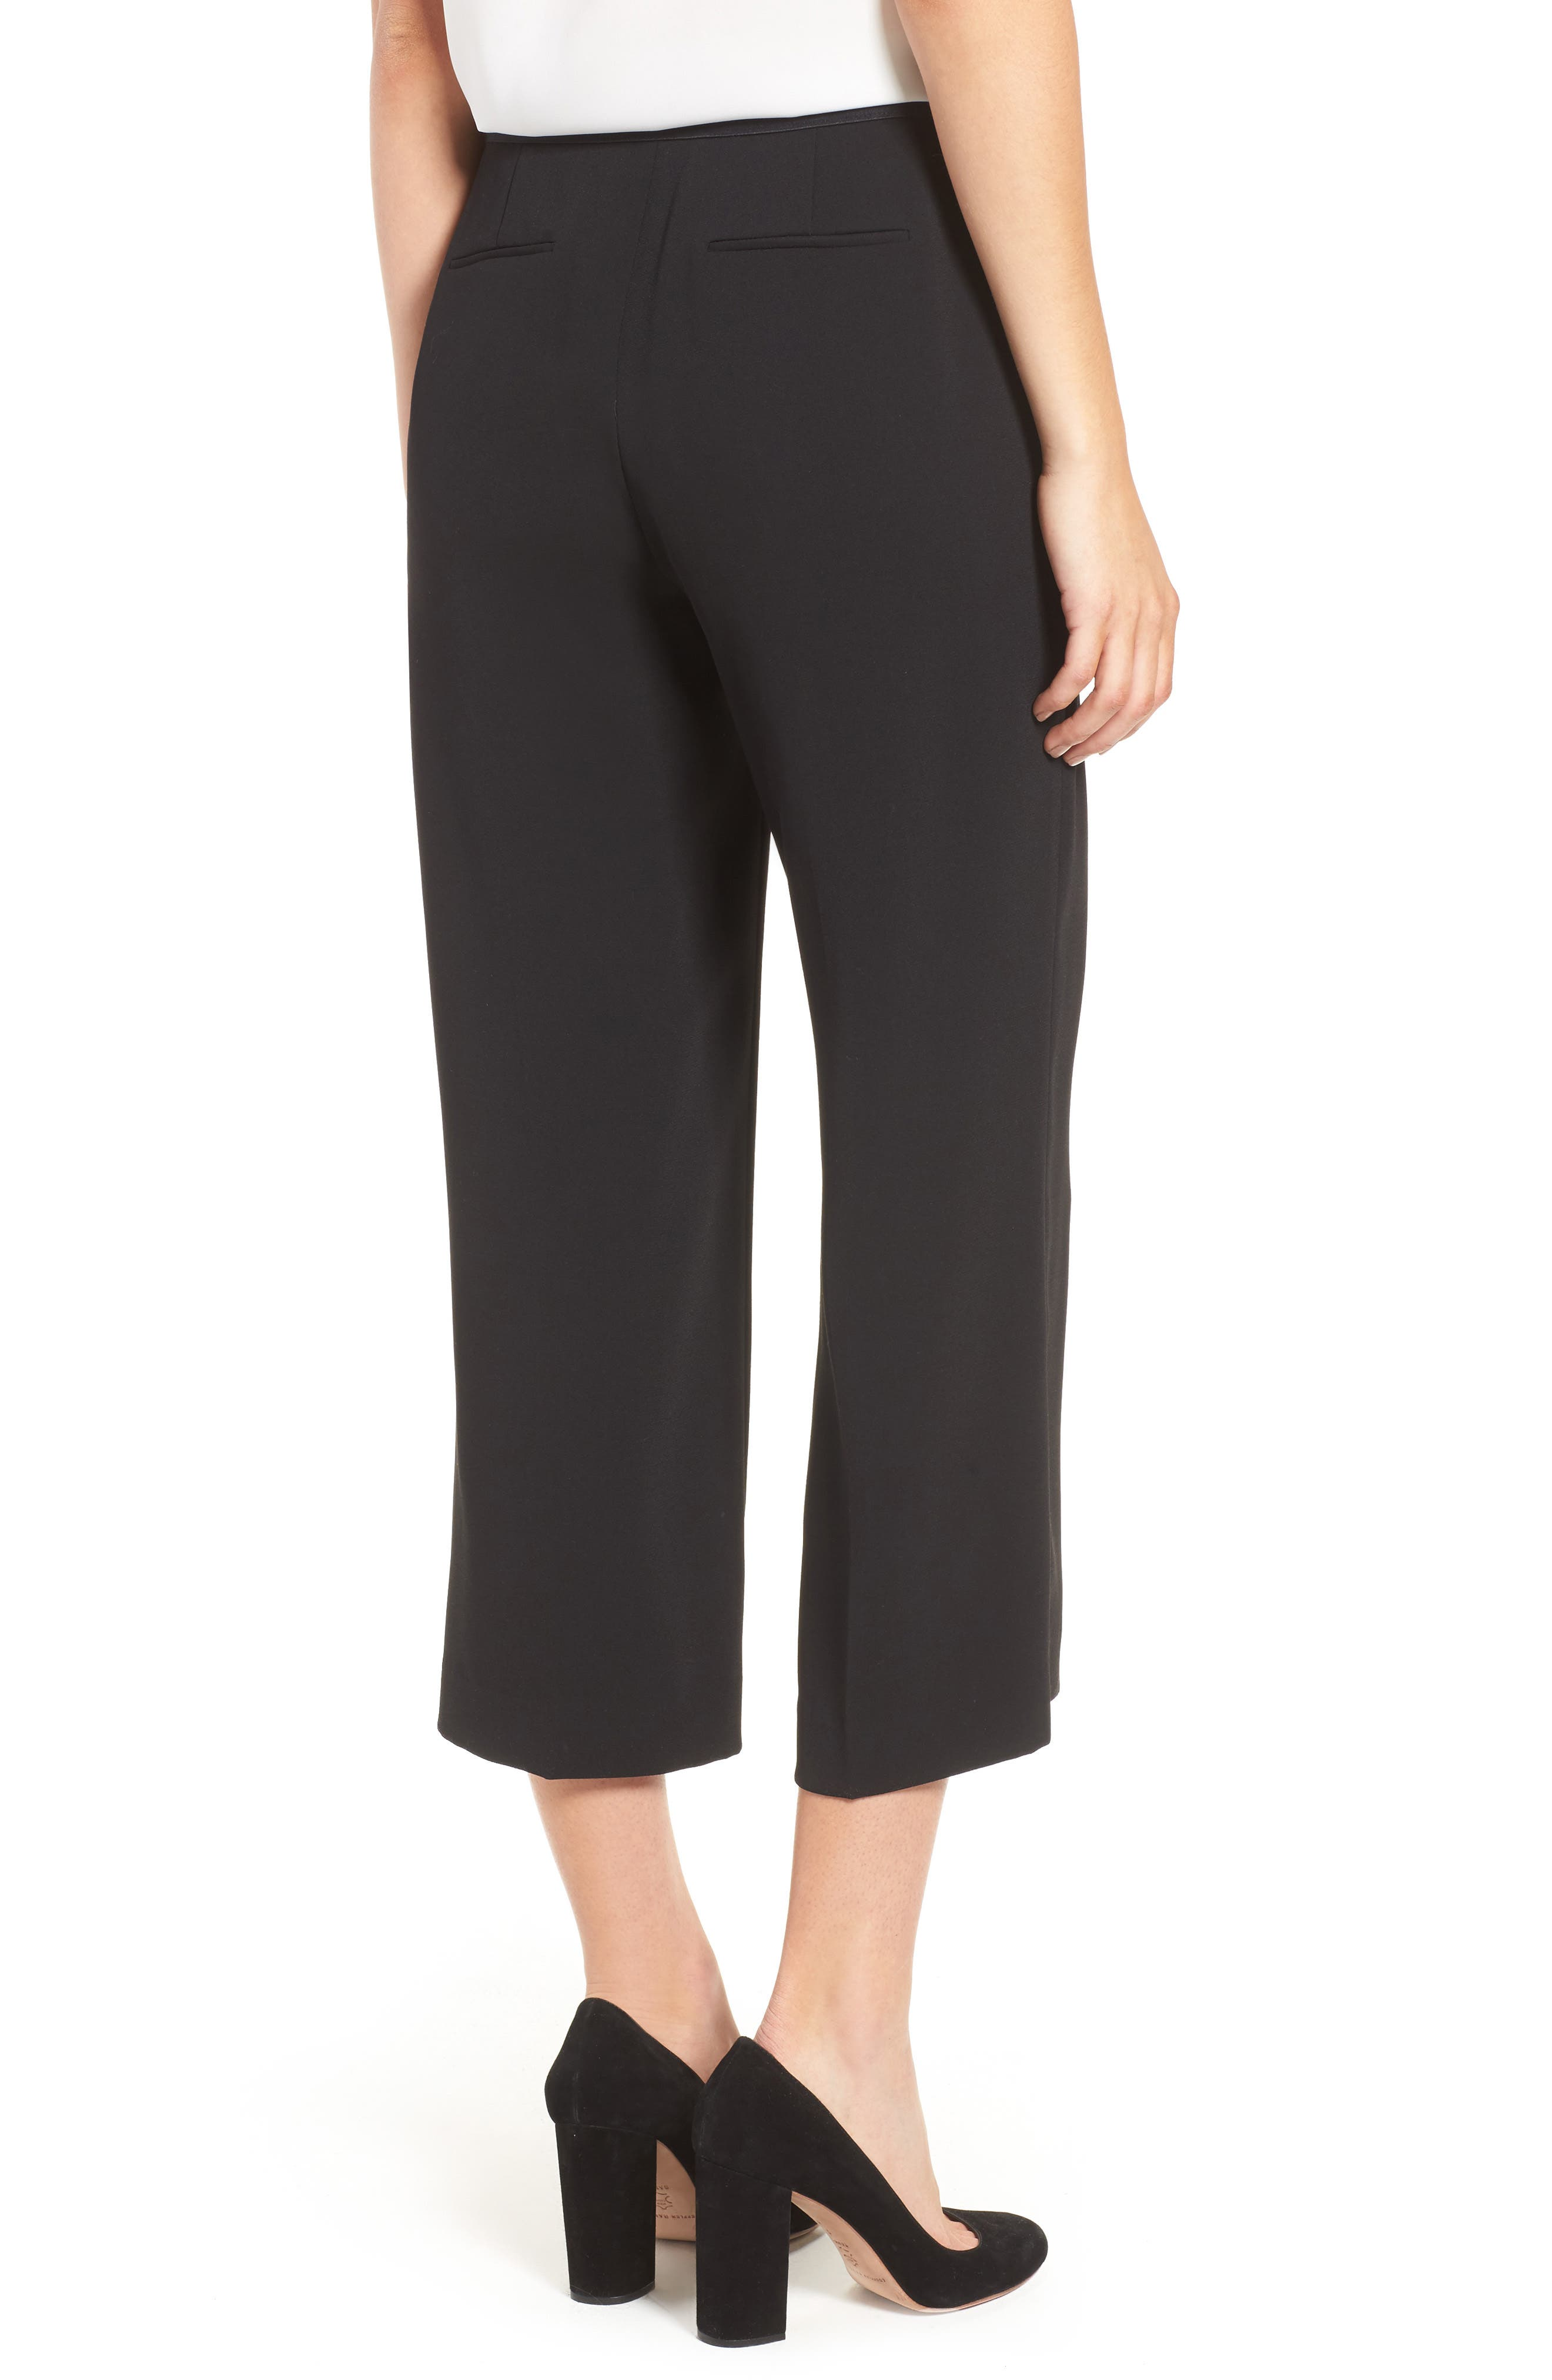 Moss Crepe Crop Trousers,                             Alternate thumbnail 2, color,                             001